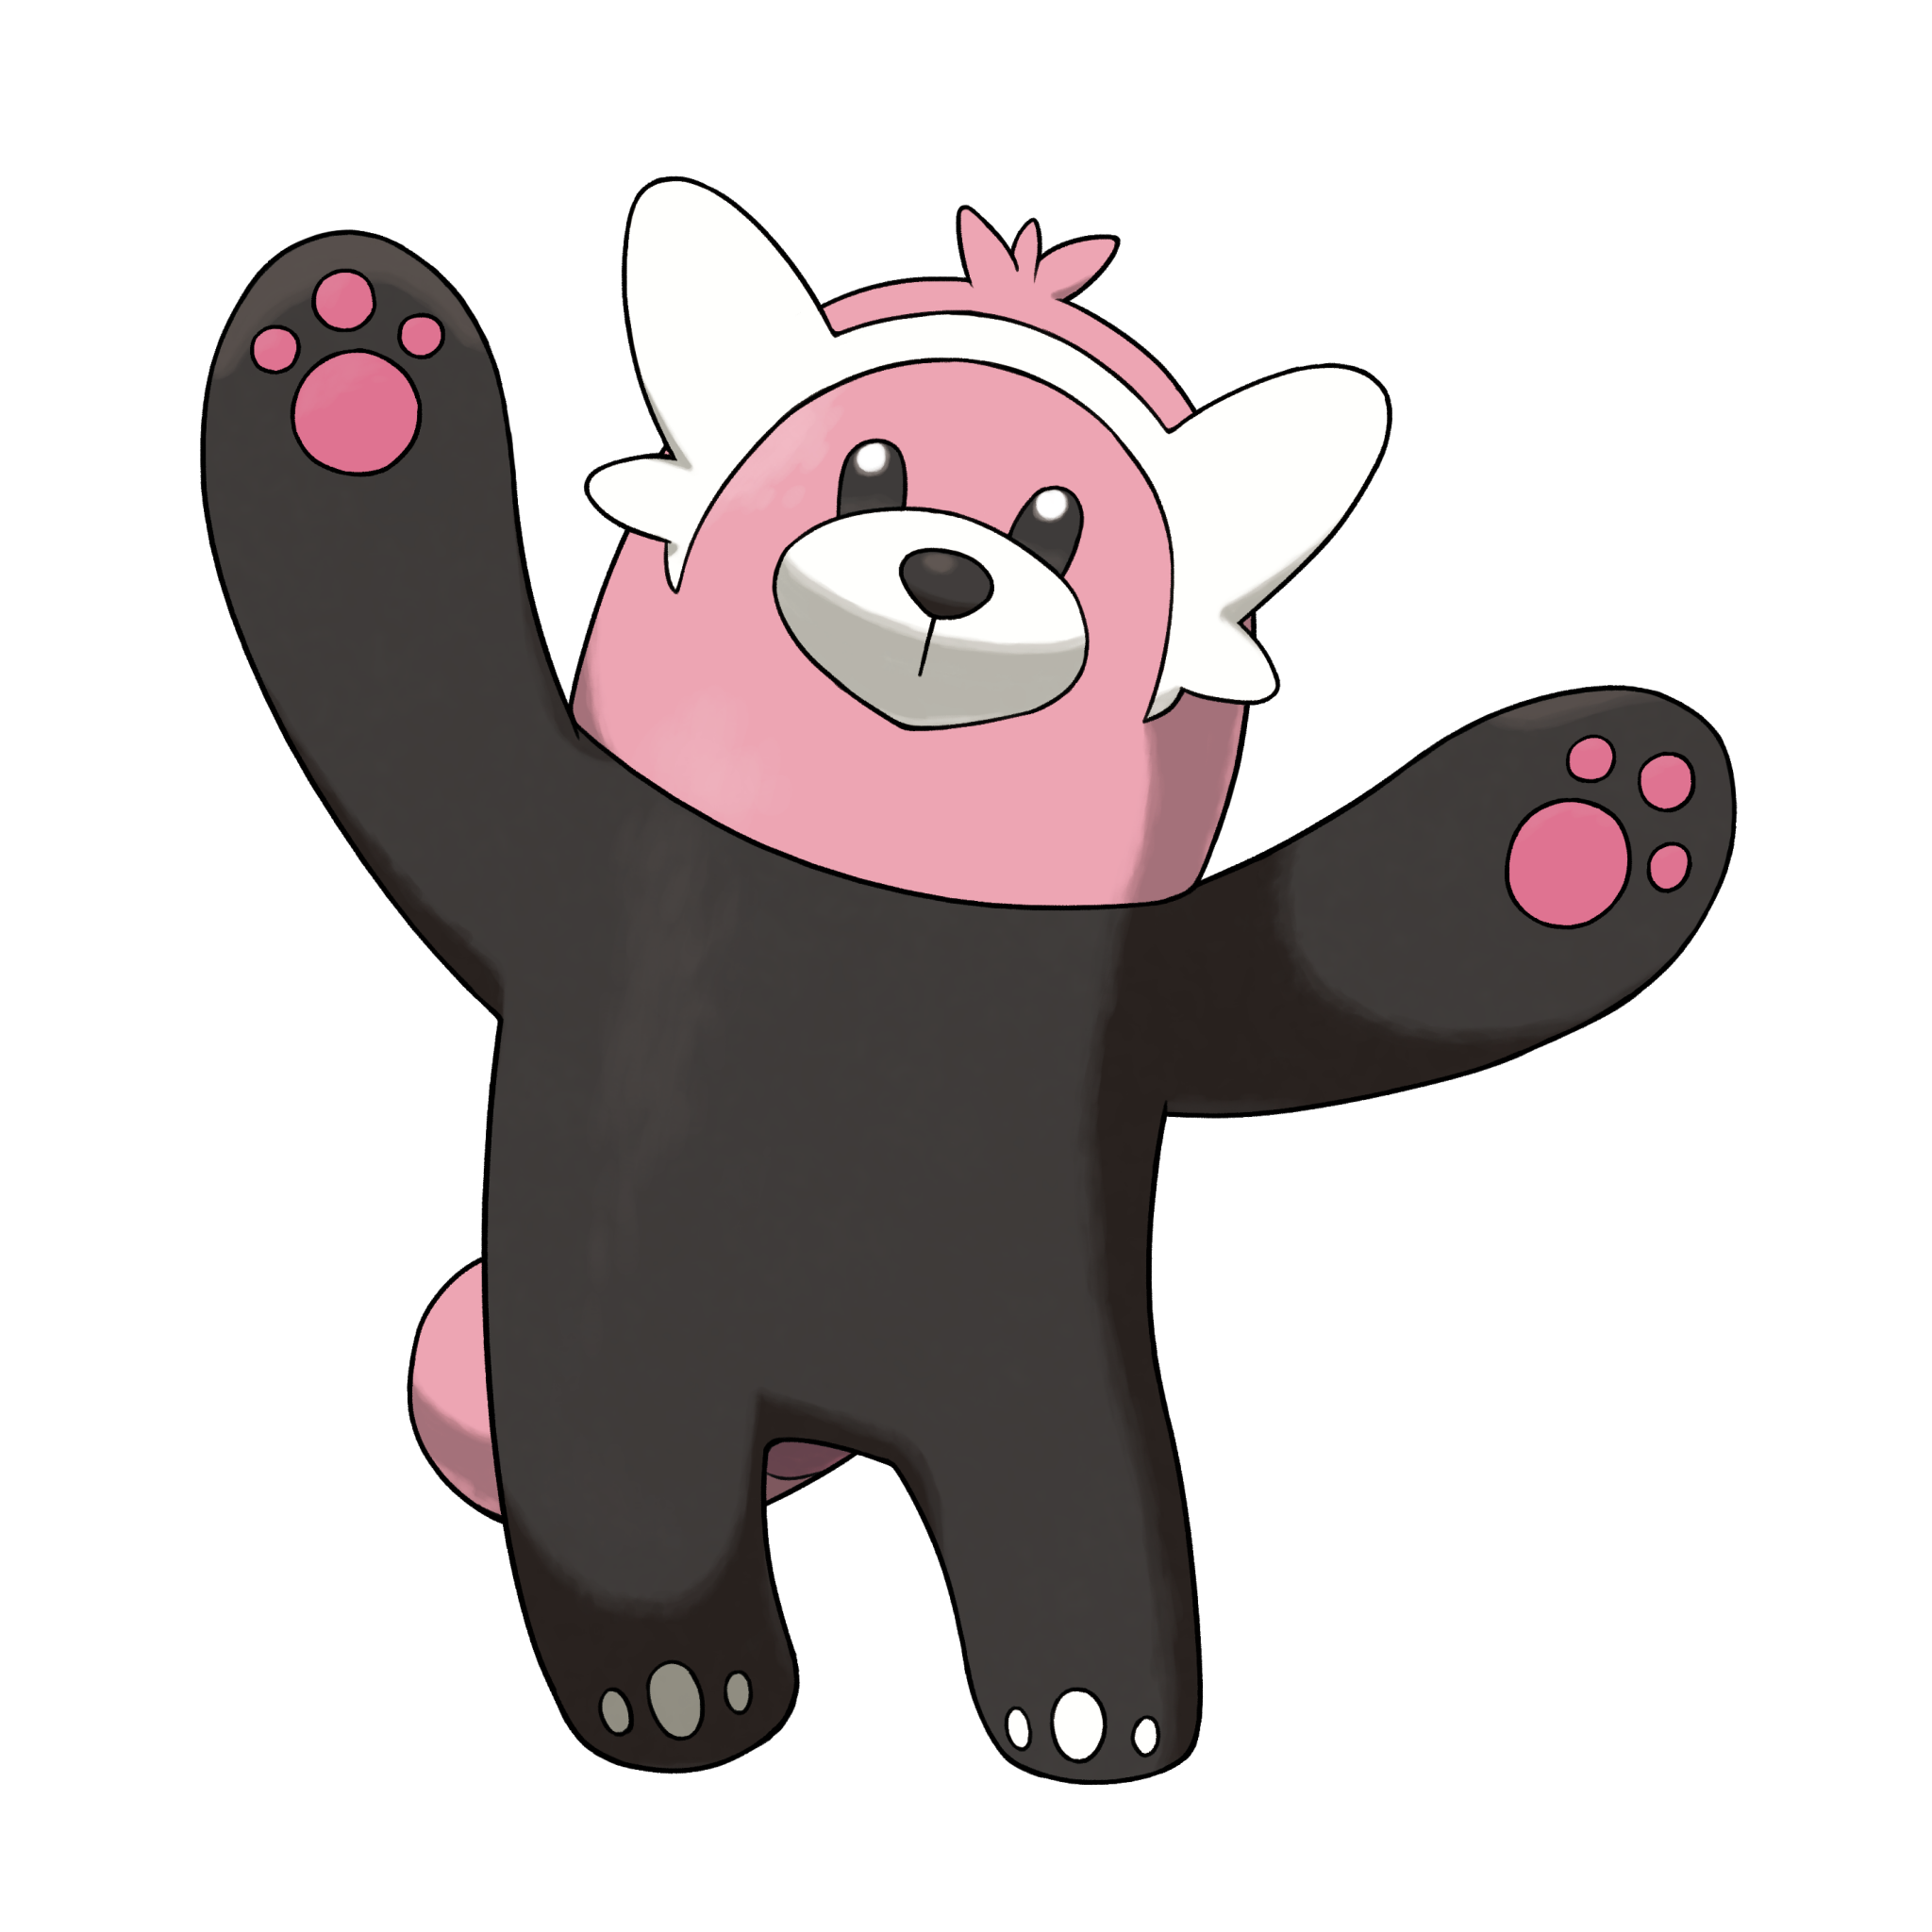 Moon and sun hugging free clipart clip free download New Features and Pokémon Confirmed for Pokémon Sun & Moon - n3rdabl3 clip free download